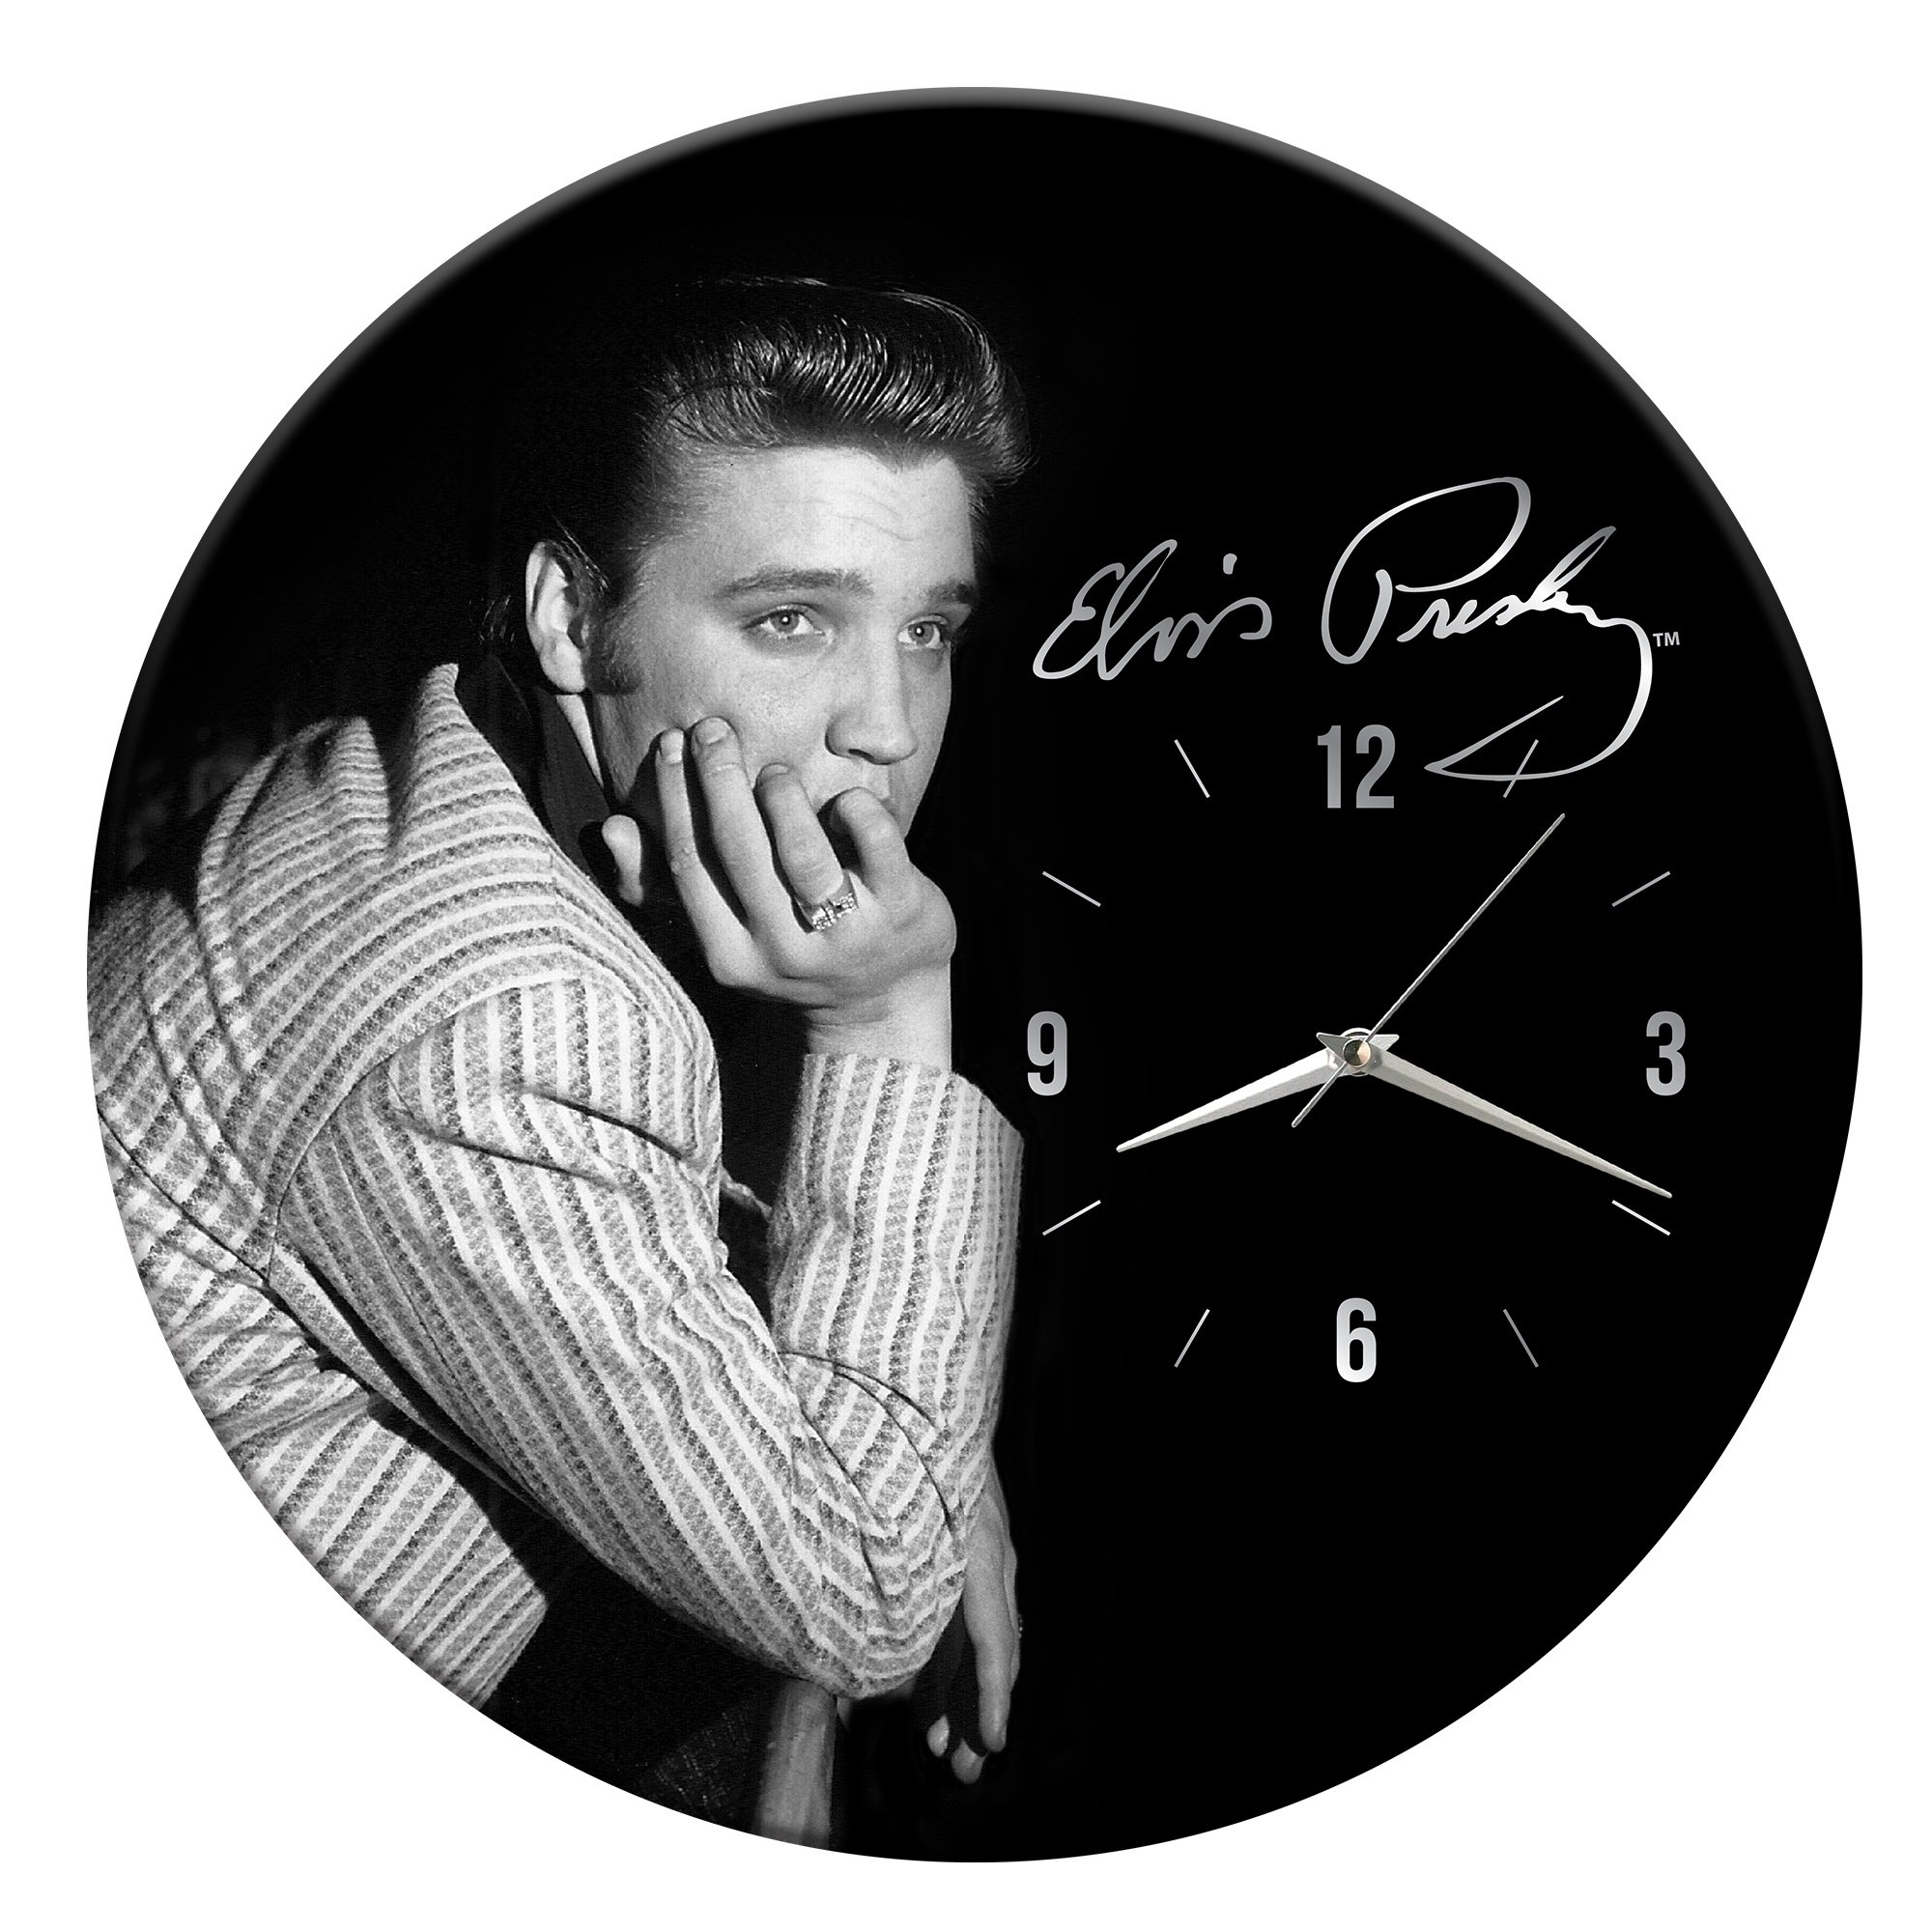 Vandor Elvis Presley 13.5 inch Cordless Wood Wall Clock, 13.5 x 1.5 x 13.5 inches, Black/White (47189)